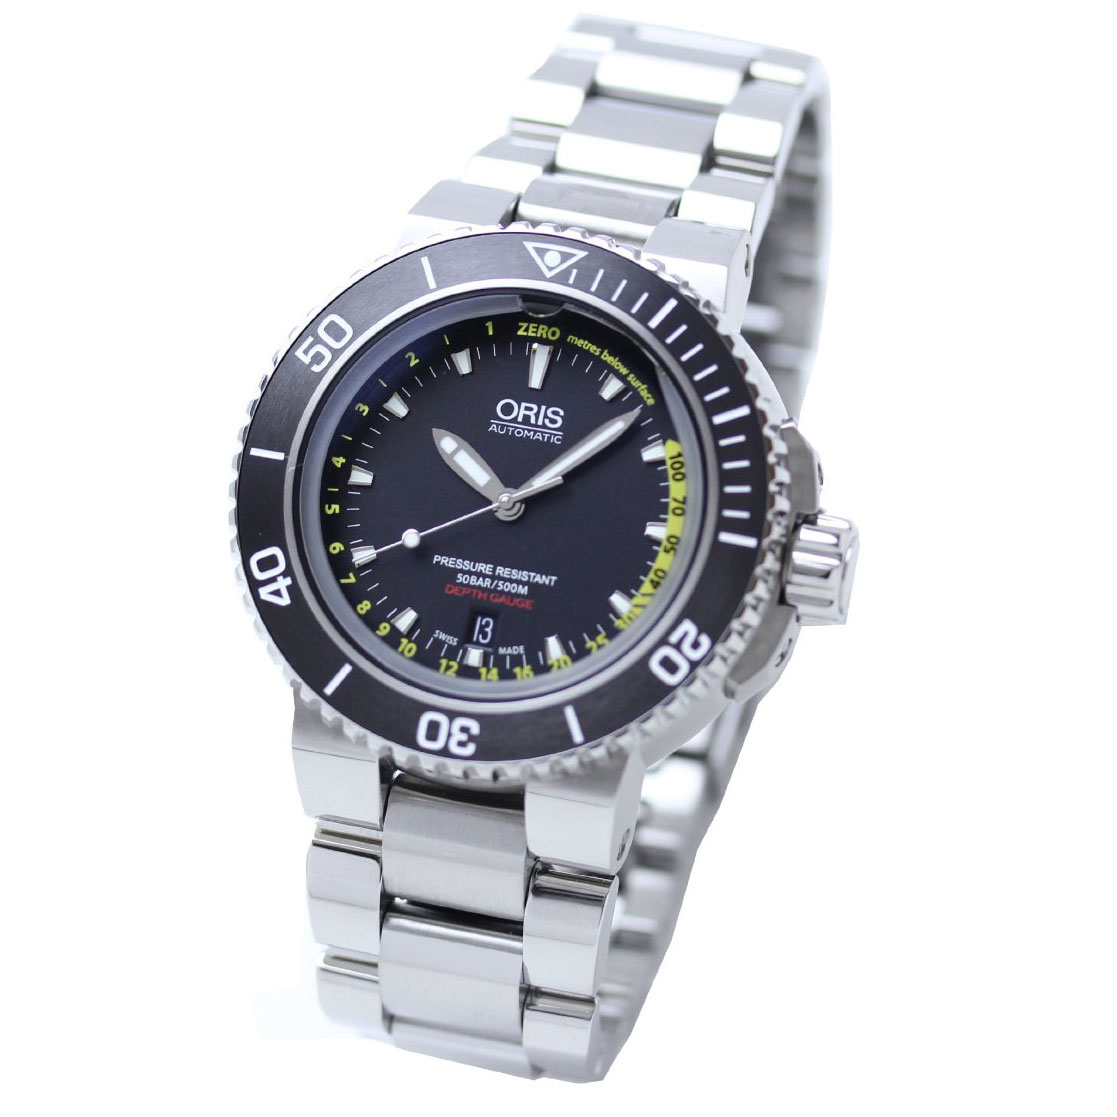 watchshop com mens orisaquisdate aquis watch gents original watches automatic oris